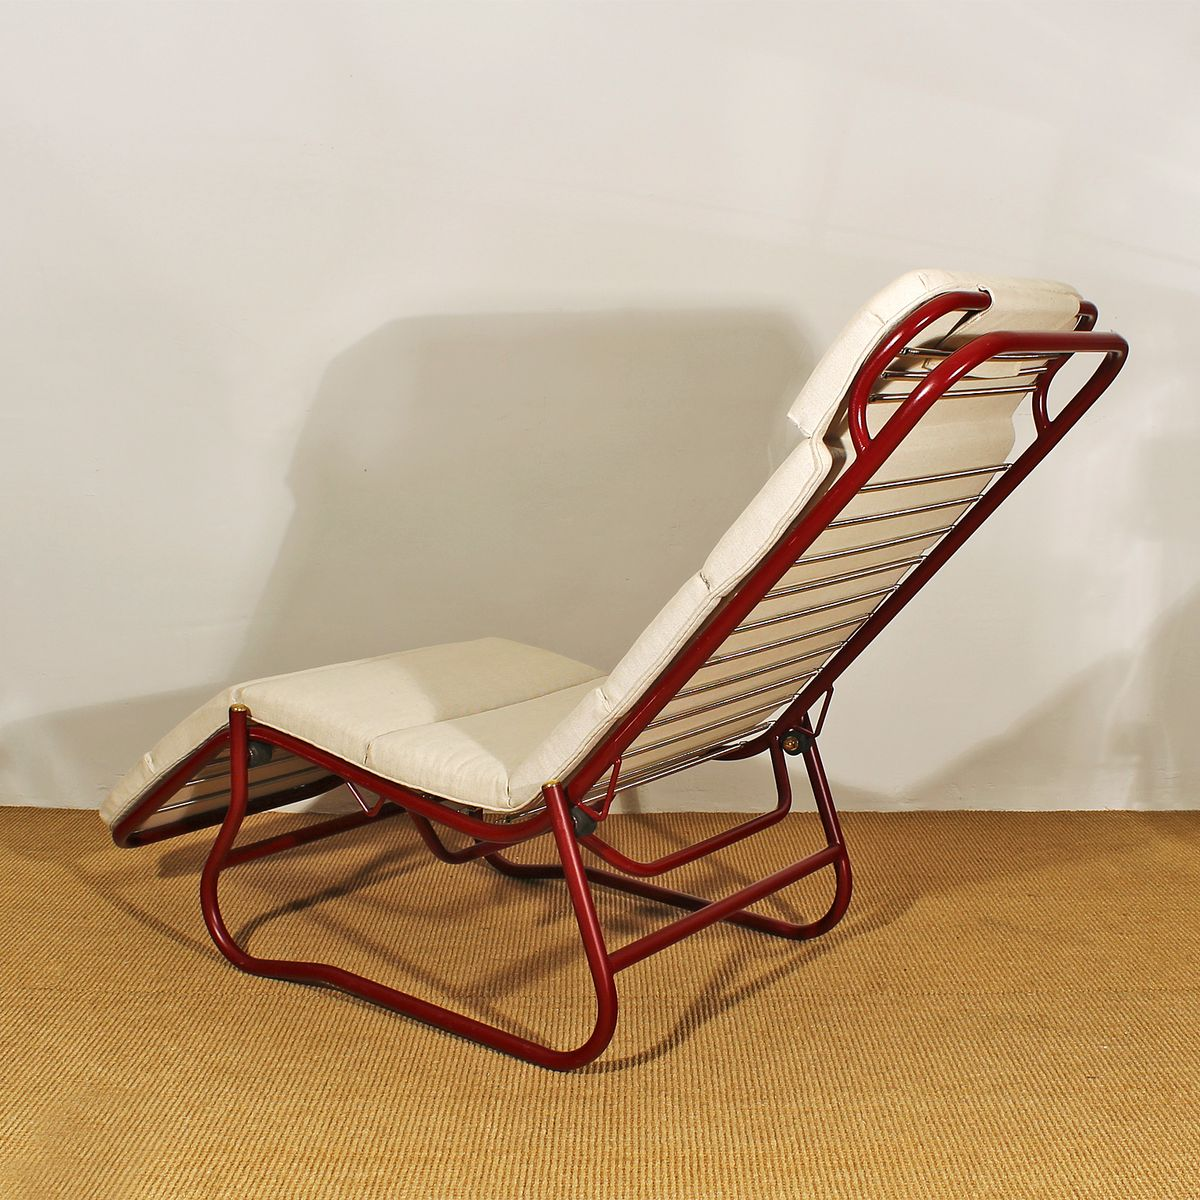 Vintage bauhaus style chaise longue 1920s for sale at pamono for Antique chaise longue for sale uk